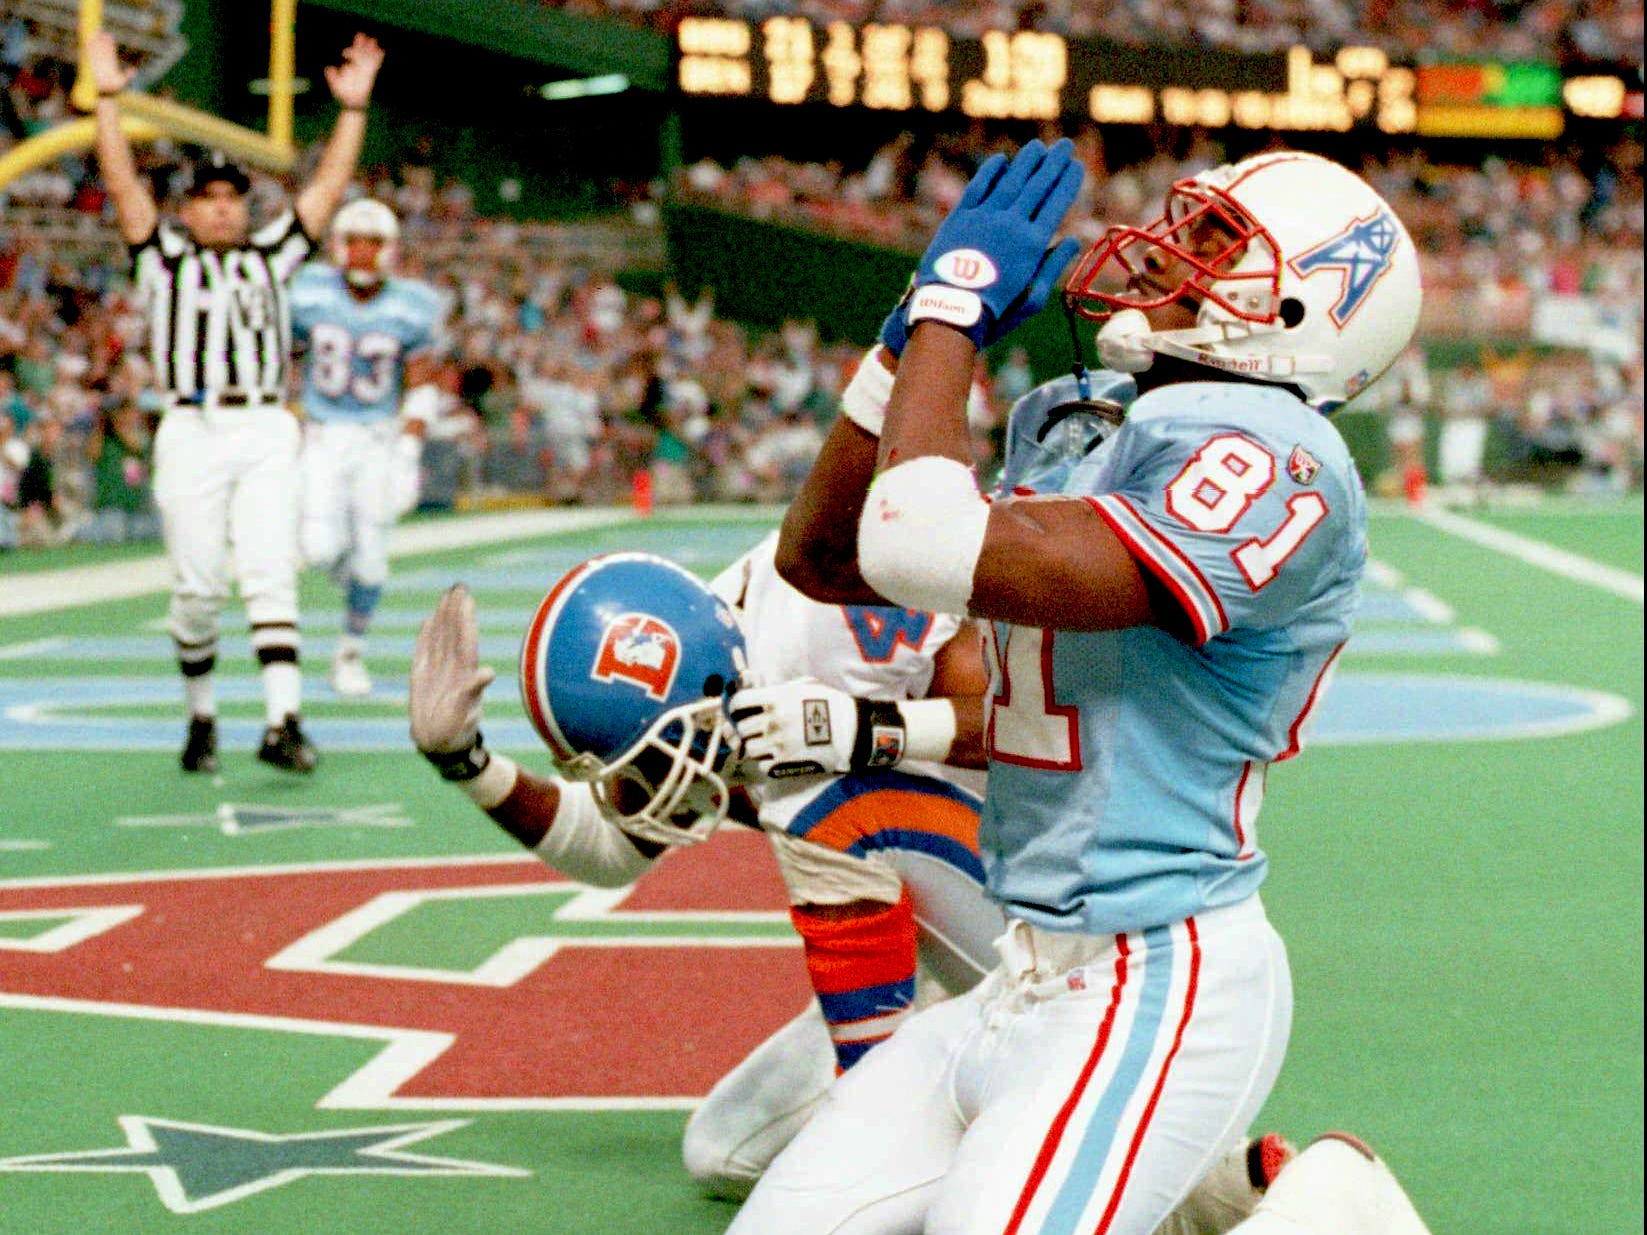 Houston Oilers Chris Sanders looks to the heavens in thanks after hauling in a 33-yard second quarter touchdown pass, beating Broncos' Lionel Washington, who pounds the turf behind Sanders Nov. 26, 1995 in Houston. The Oilers won 42-33.